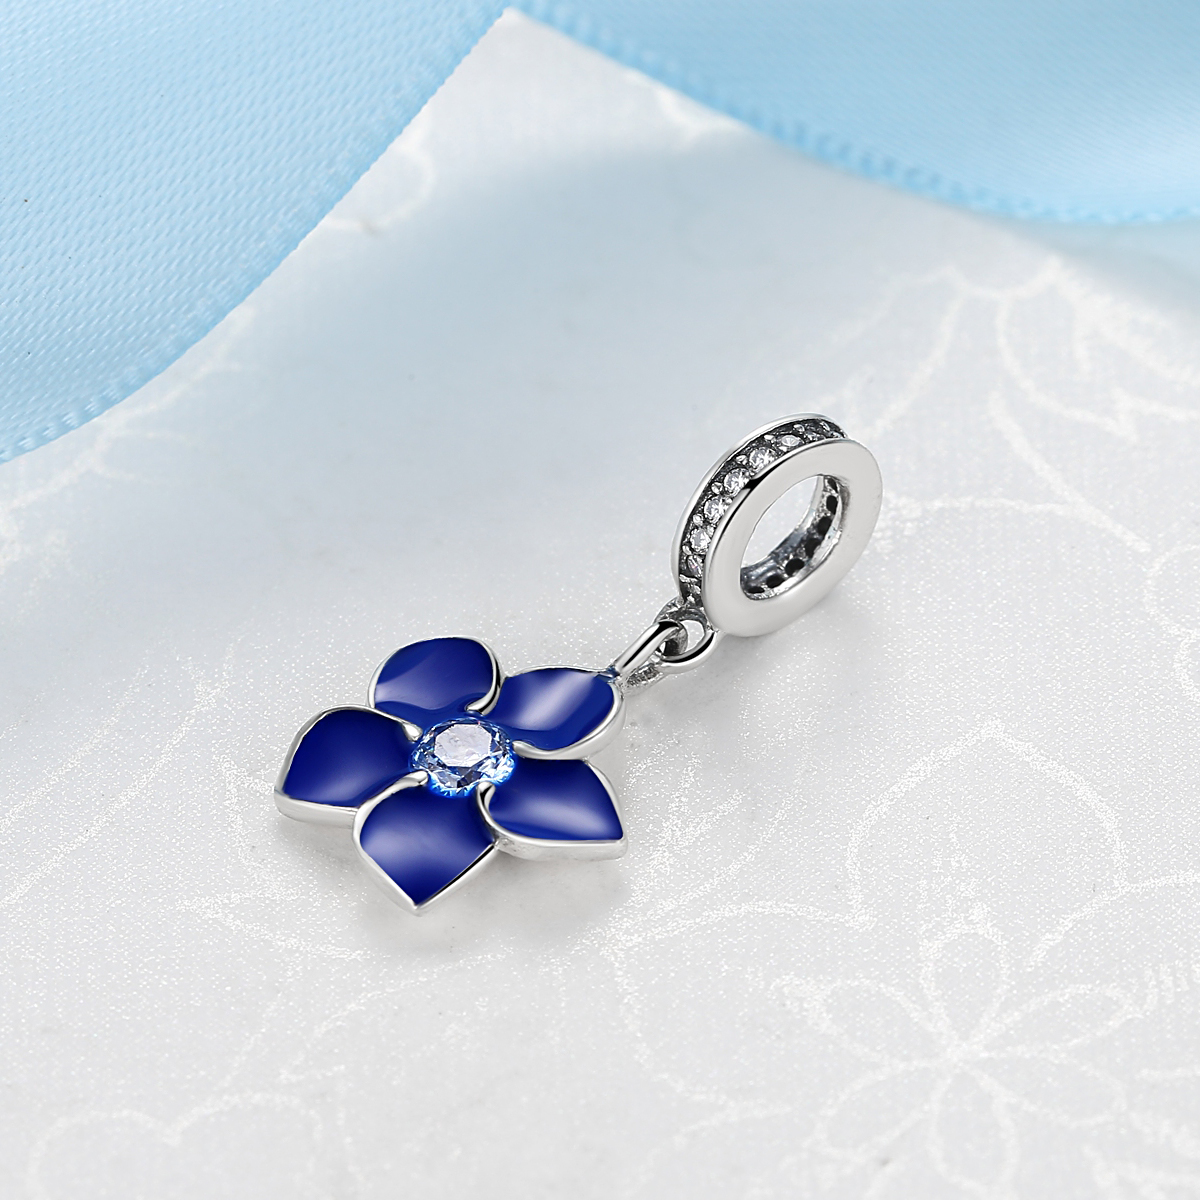 Authentic 100 925 sterling silver enamel blue flower charm pendant authentic 100 925 sterling silver enamel blue flower charm pendant beads fit pandora bracelet necklace for women fine jewelry in beads from jewelry izmirmasajfo